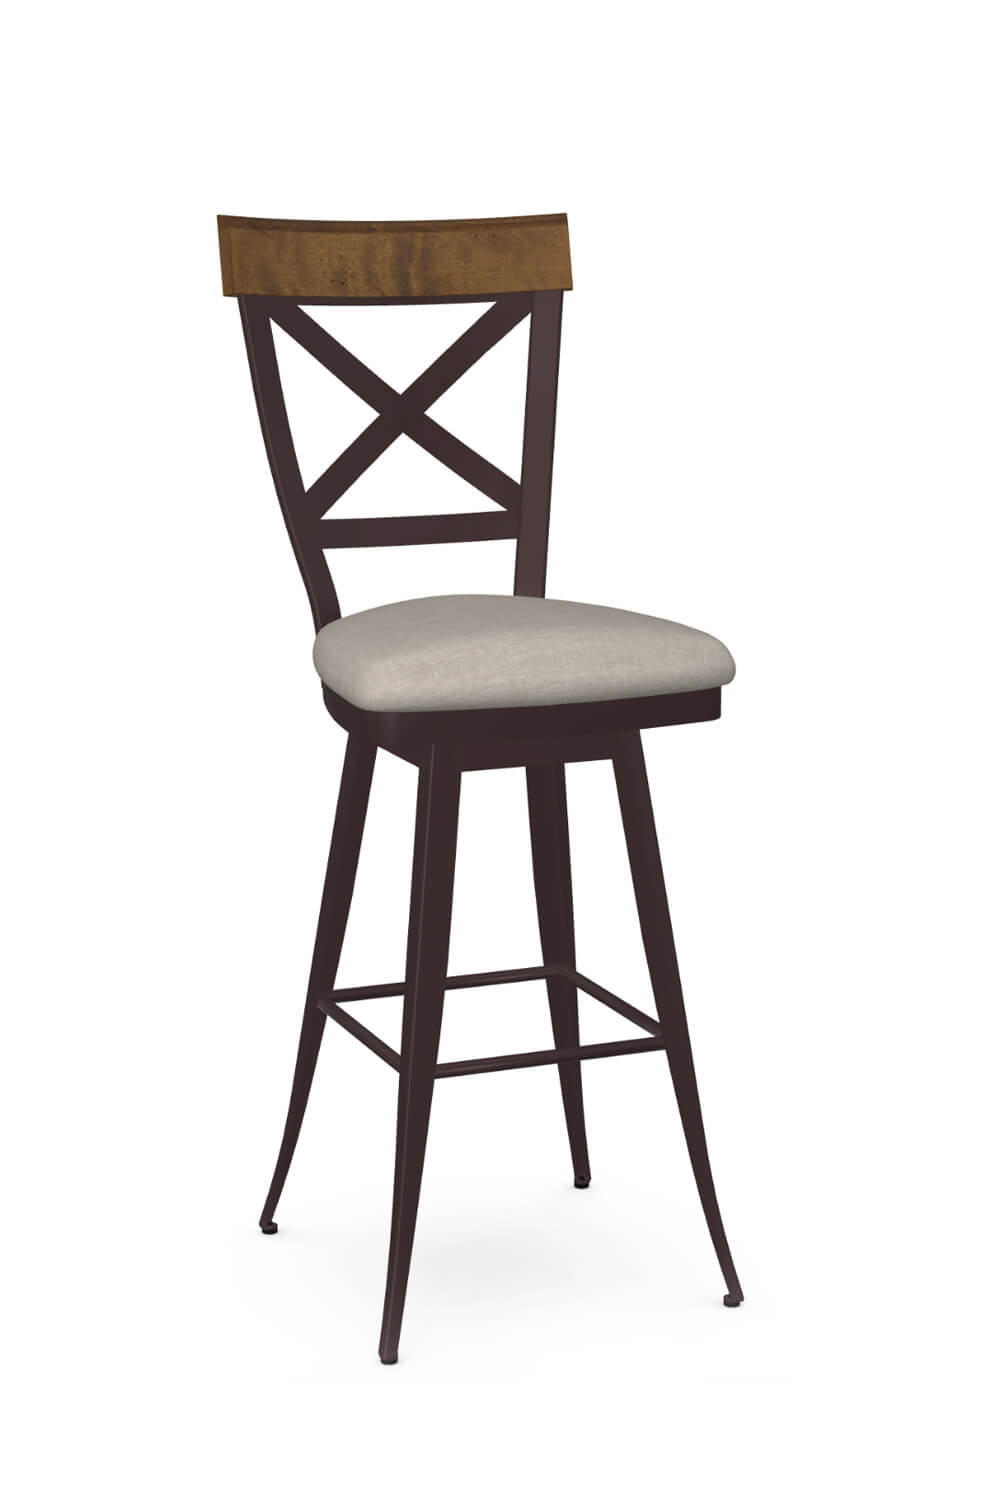 Kyle Swivel Stool with Back